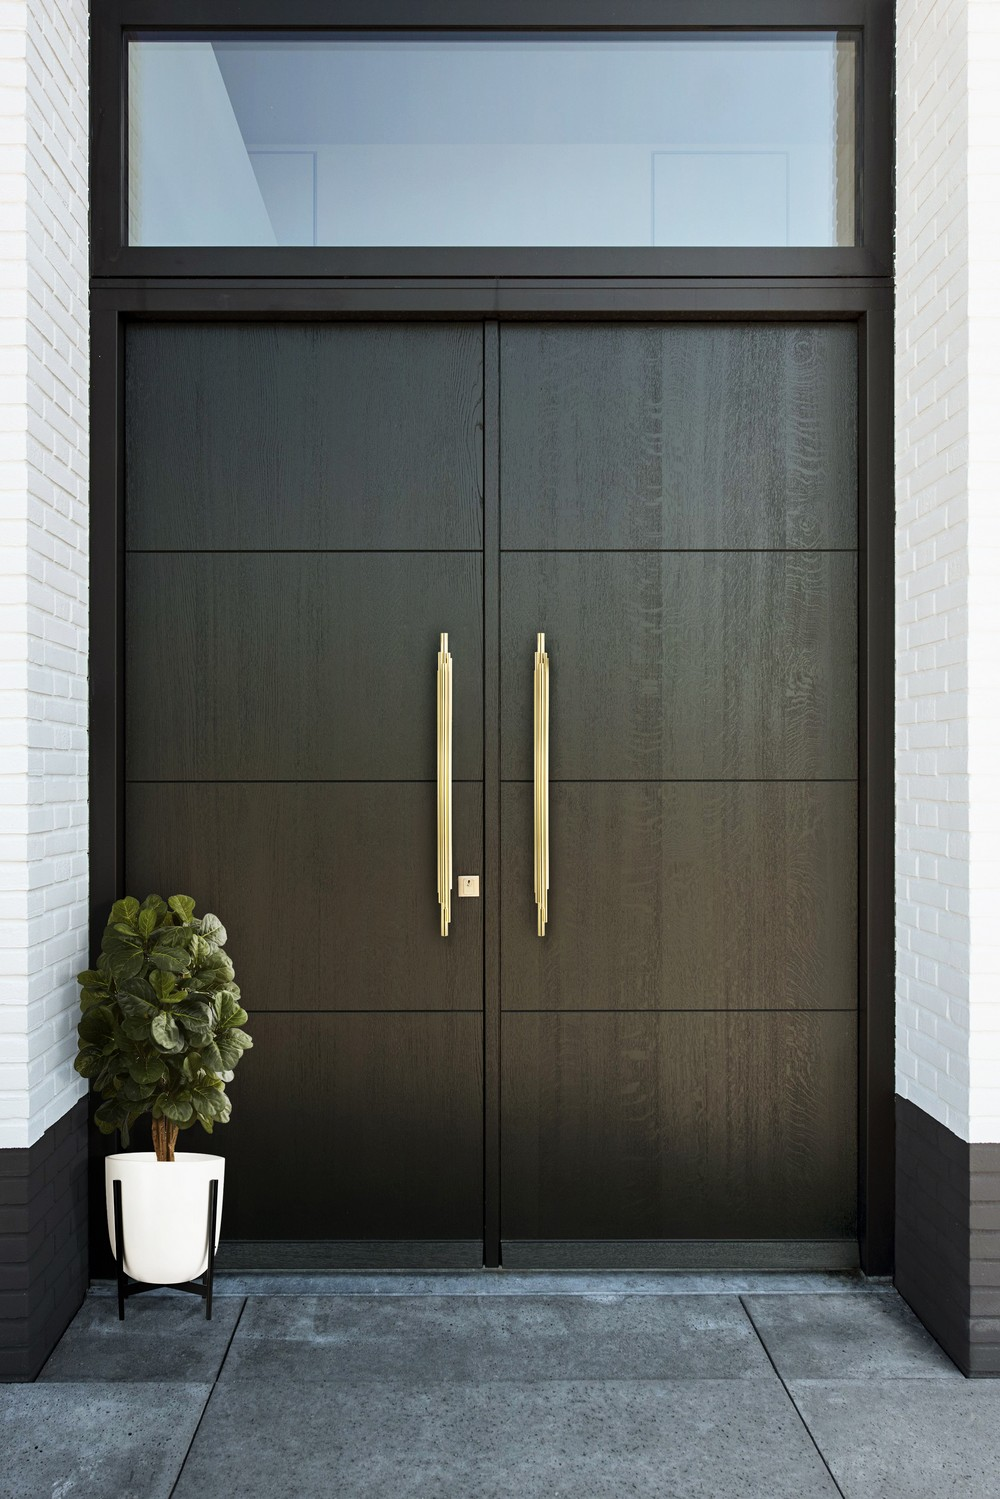 Decorative Hardware Front Door Inspirations for a Modern Look_3 decorative hardware Decorative Hardware: Front Door Inspirations for a Modern Look Decorative Hardware Front Door Inspirations for a Modern Look 3